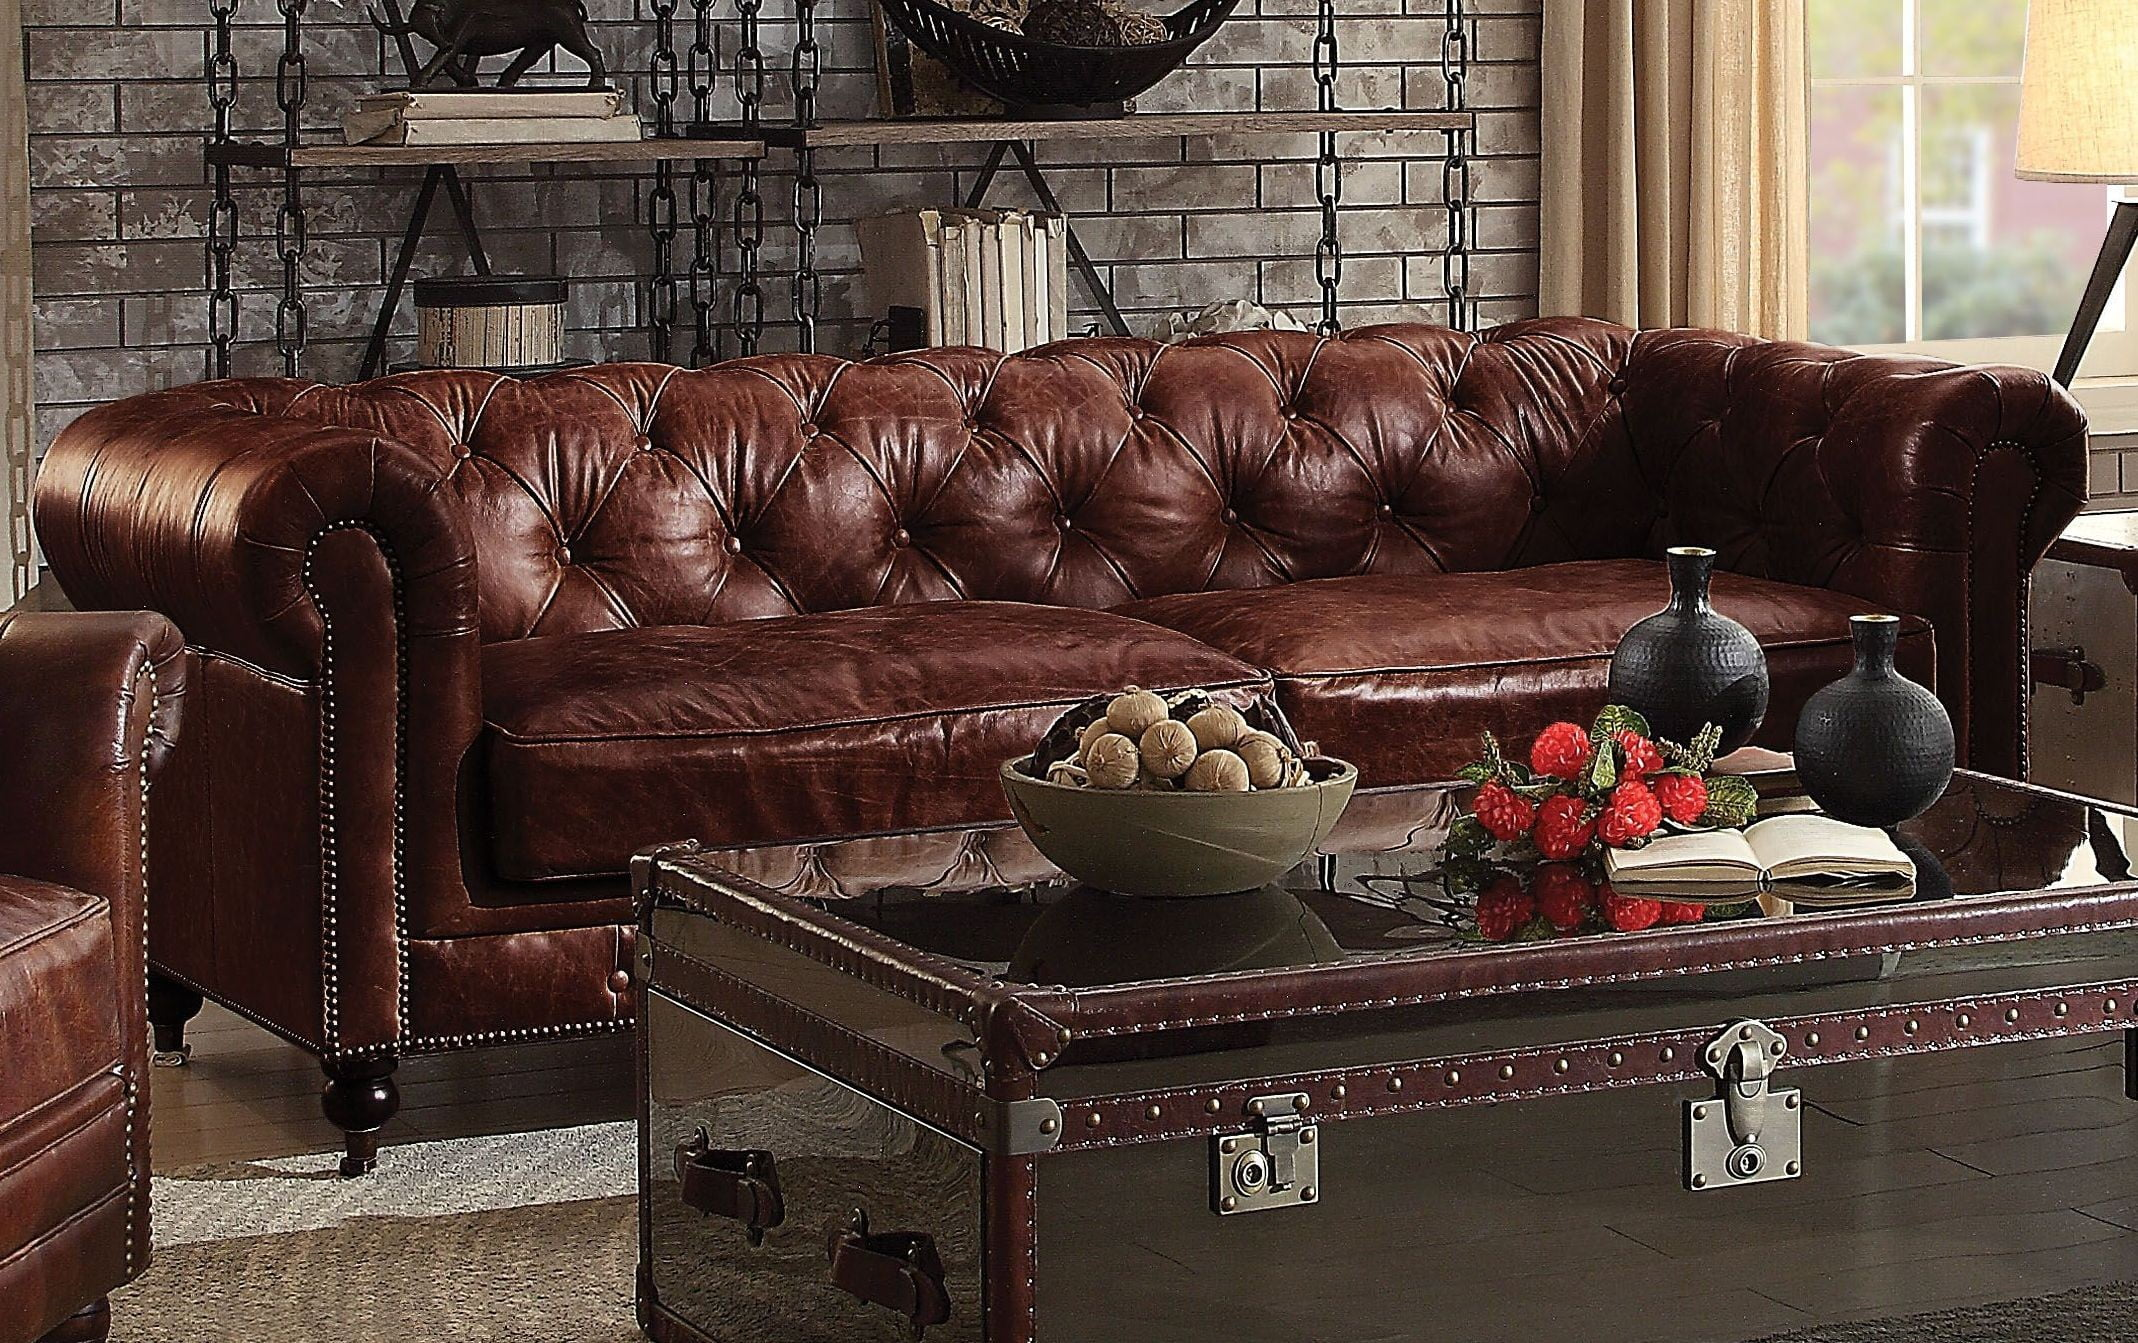 acme sectional sofa chocolate cheap deals online aberdeen vintage dark brown leather from